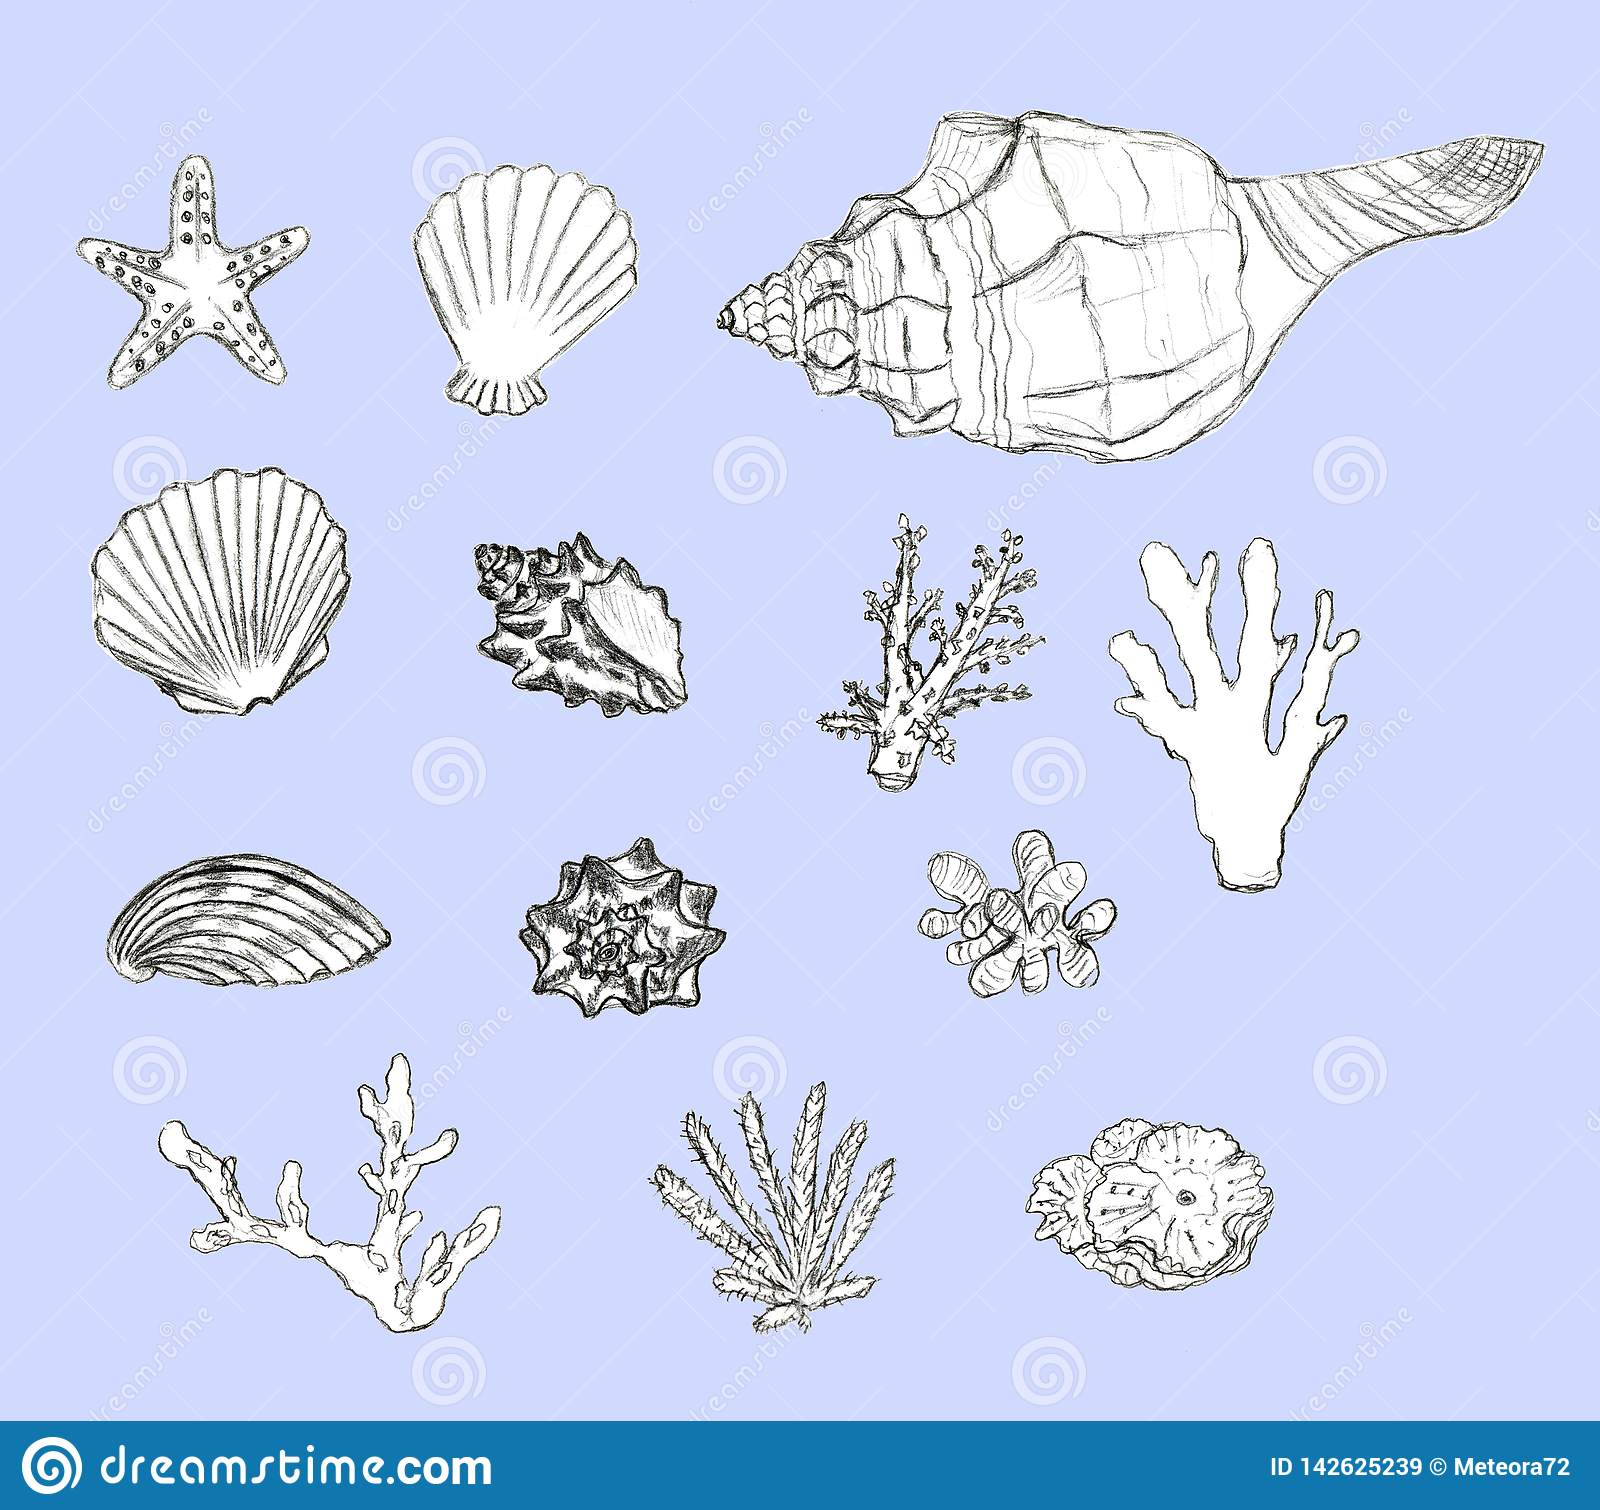 Hand drawn seashells and corals set on blue background